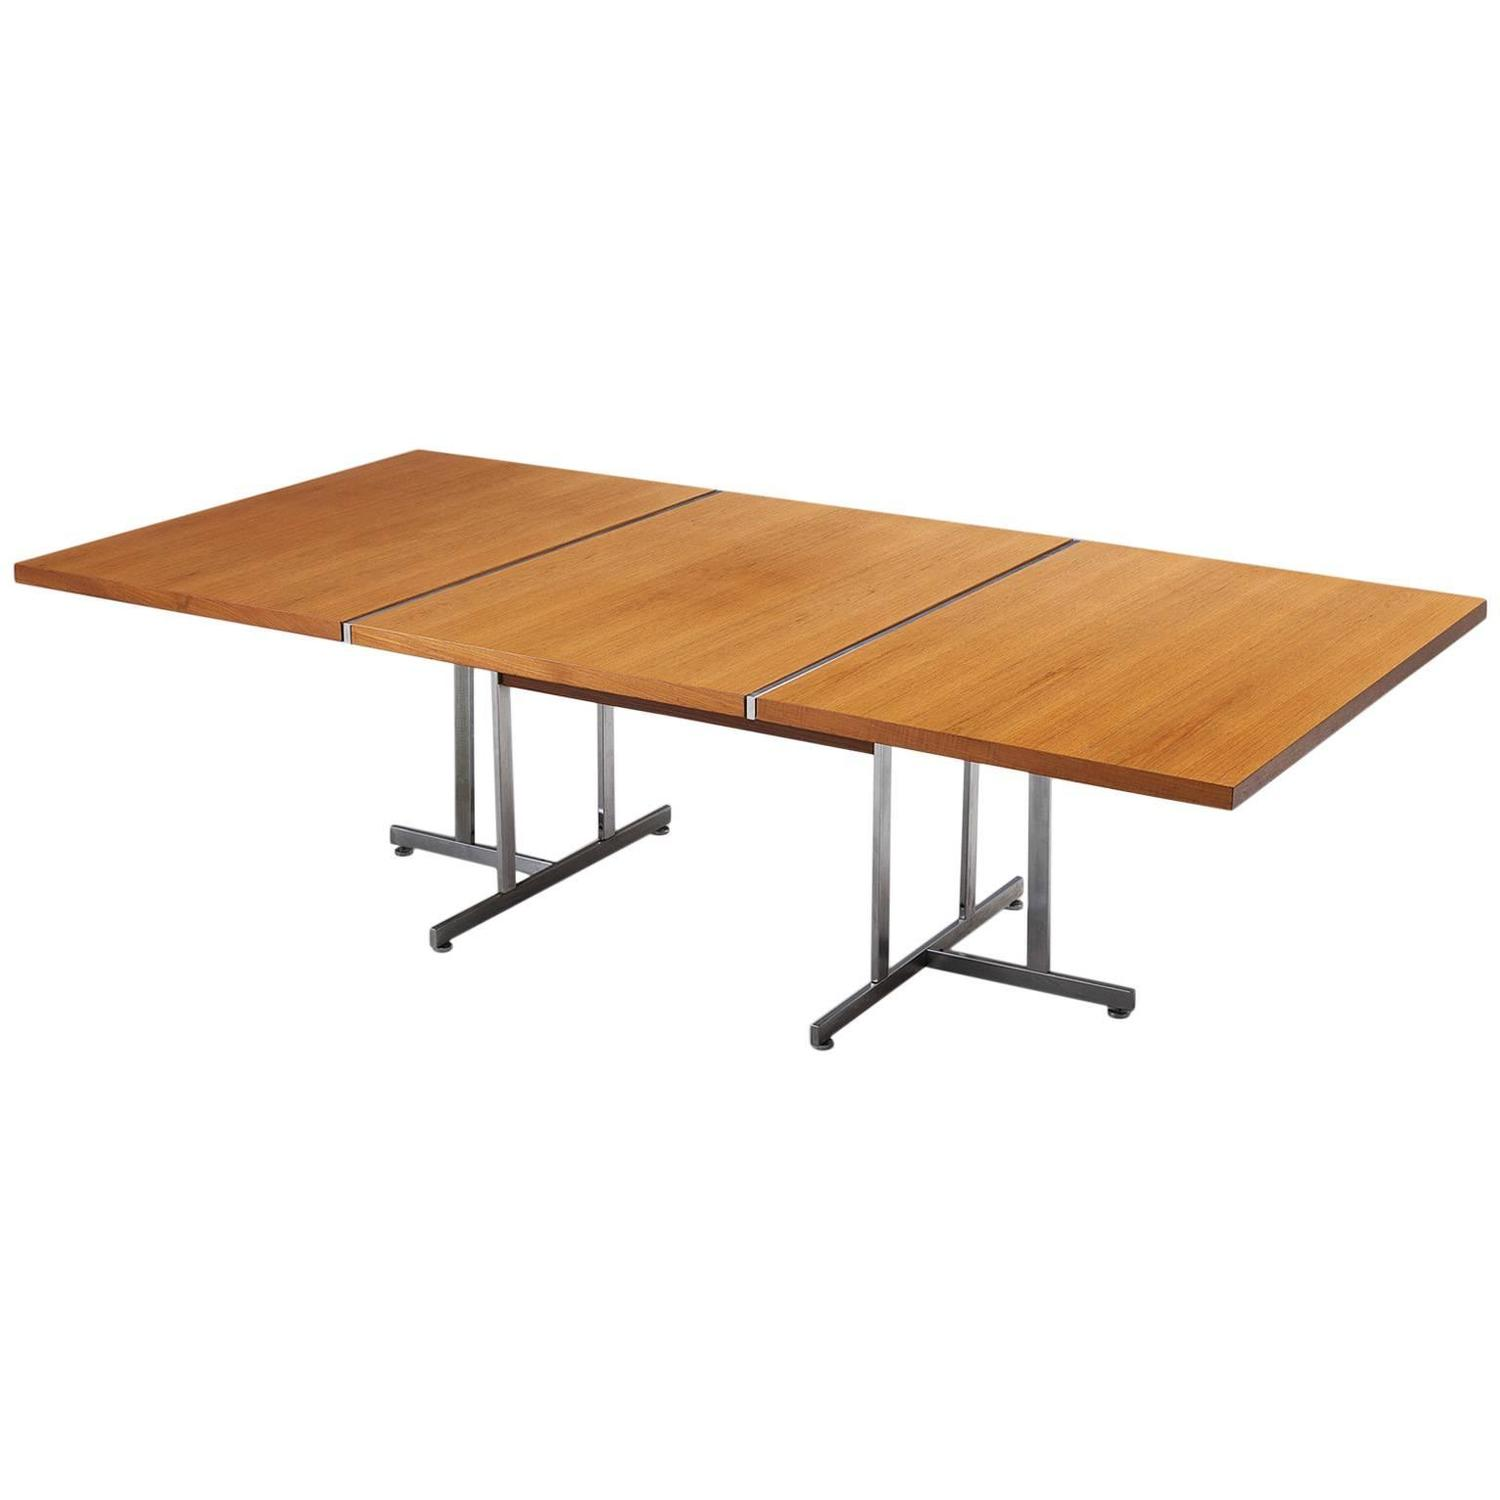 Large Dining Table in Teak and Metal For Sale at 1stdibs